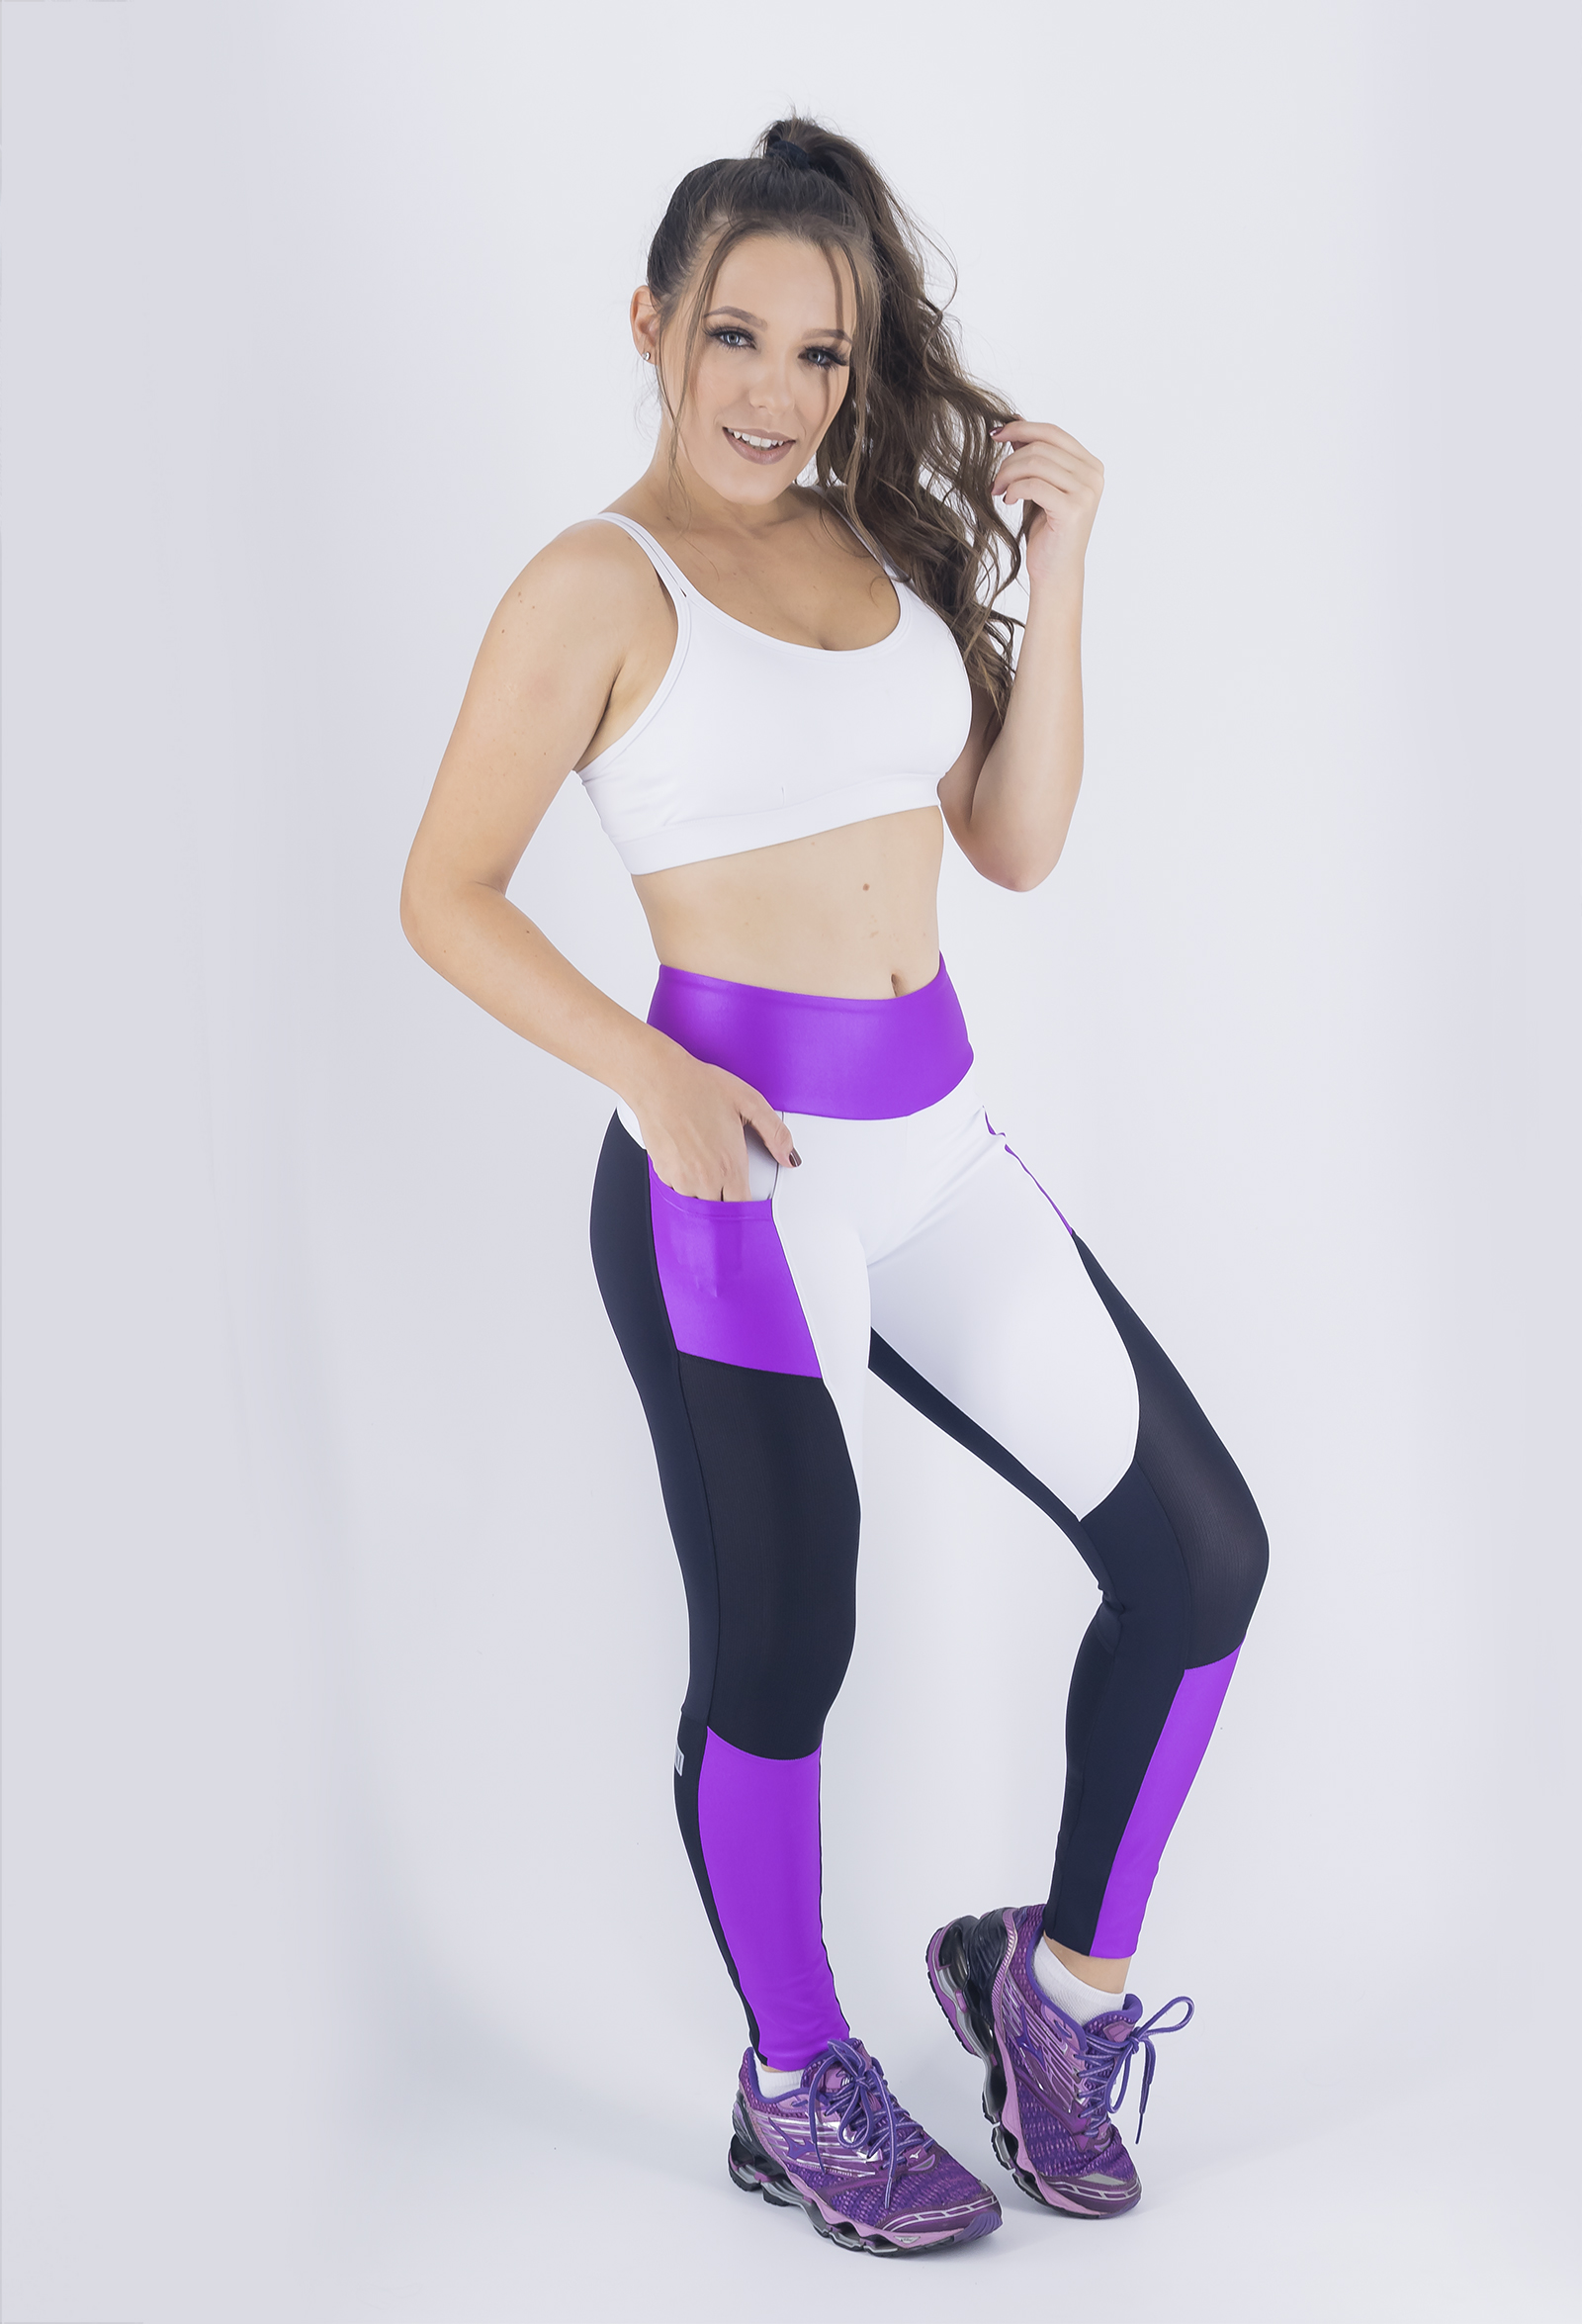 Legging Win Roxa, Coleção Just For You - NKT Fitwear Moda Fitness